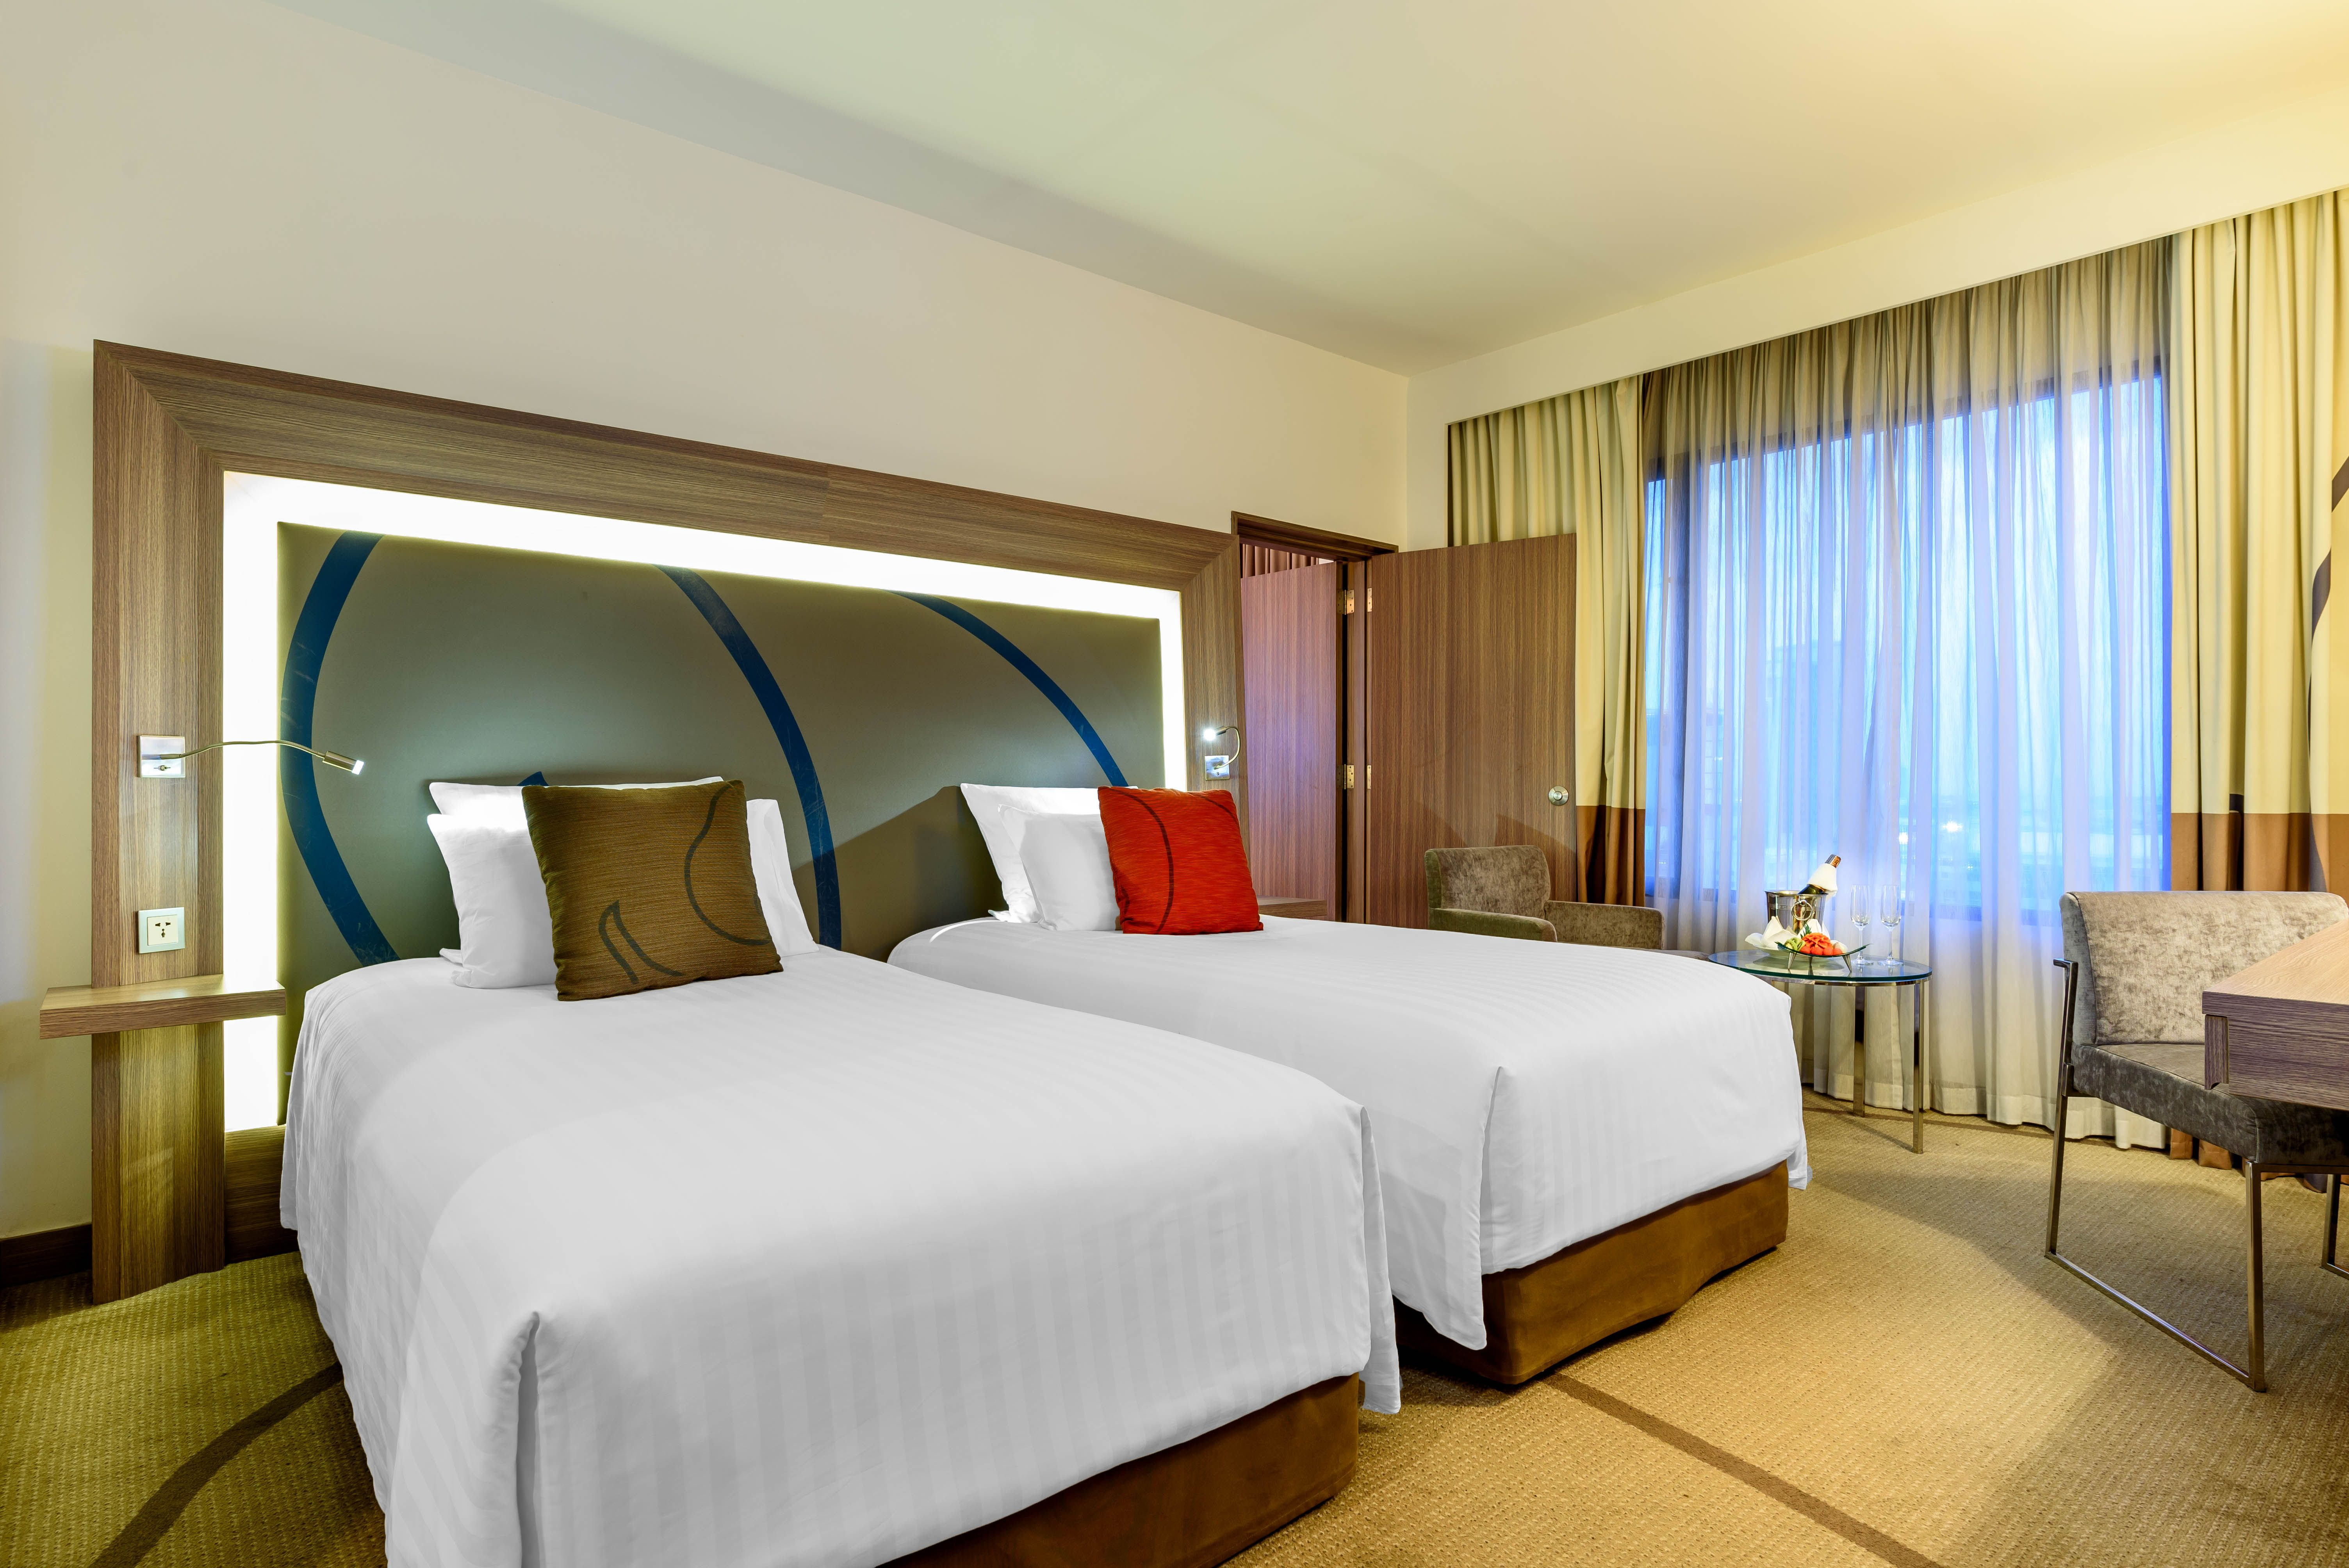 The Bangkok Hotel S 84 Square Metre Two Bedroom Suite Features Separate Living Dining And Sleeping Areas The Two Bedroom Suites 2 Bedroom Suites Bedroom Suite